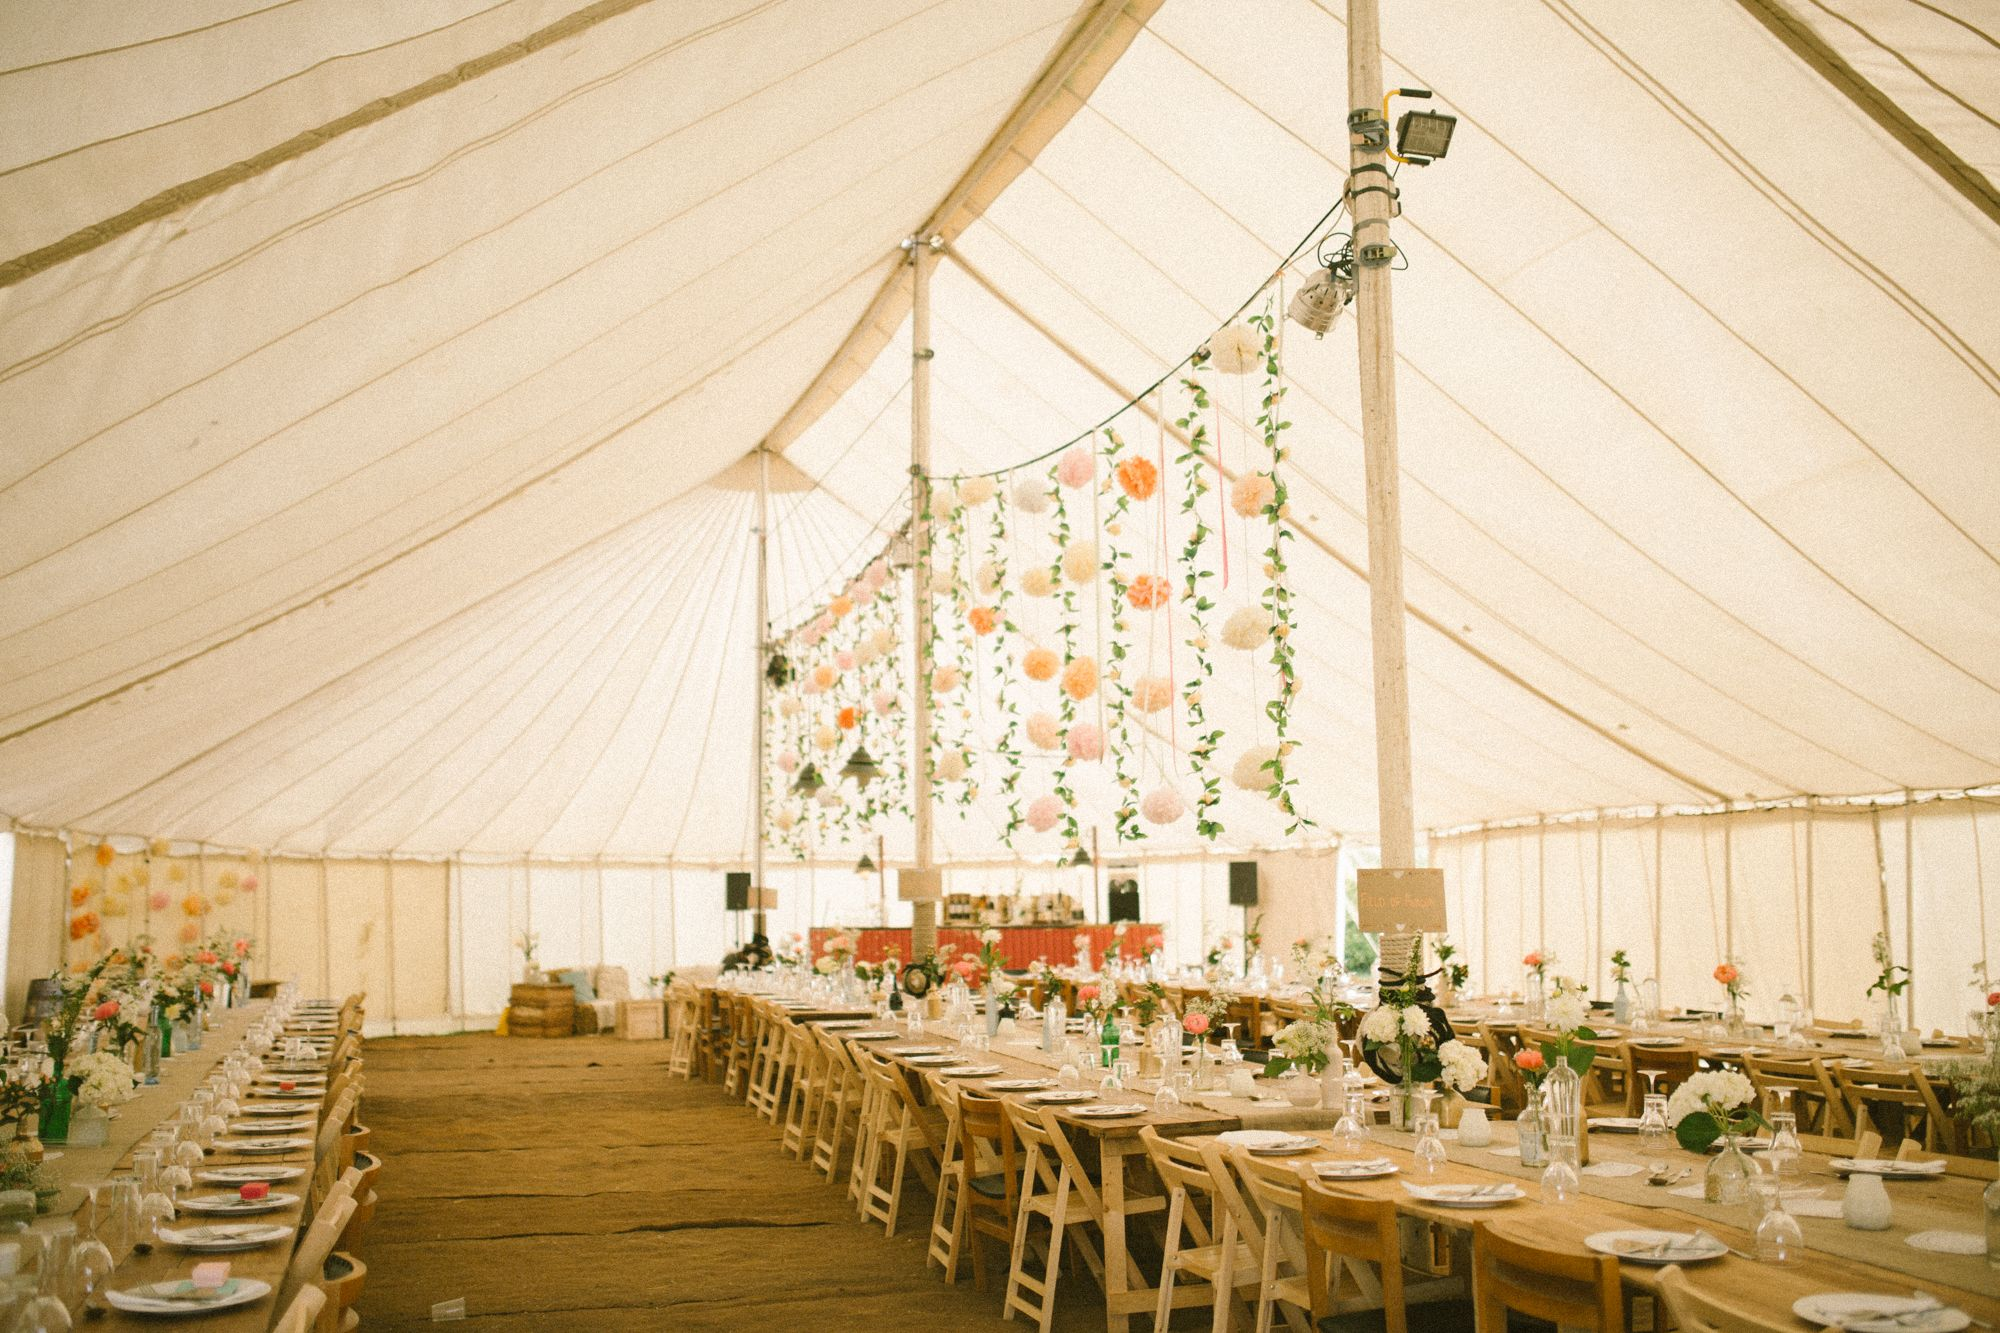 We had beautiful old fashioned tents with coco matting floor. Giant pom poms courtesy of & We had beautiful old fashioned tents with coco matting floor ...